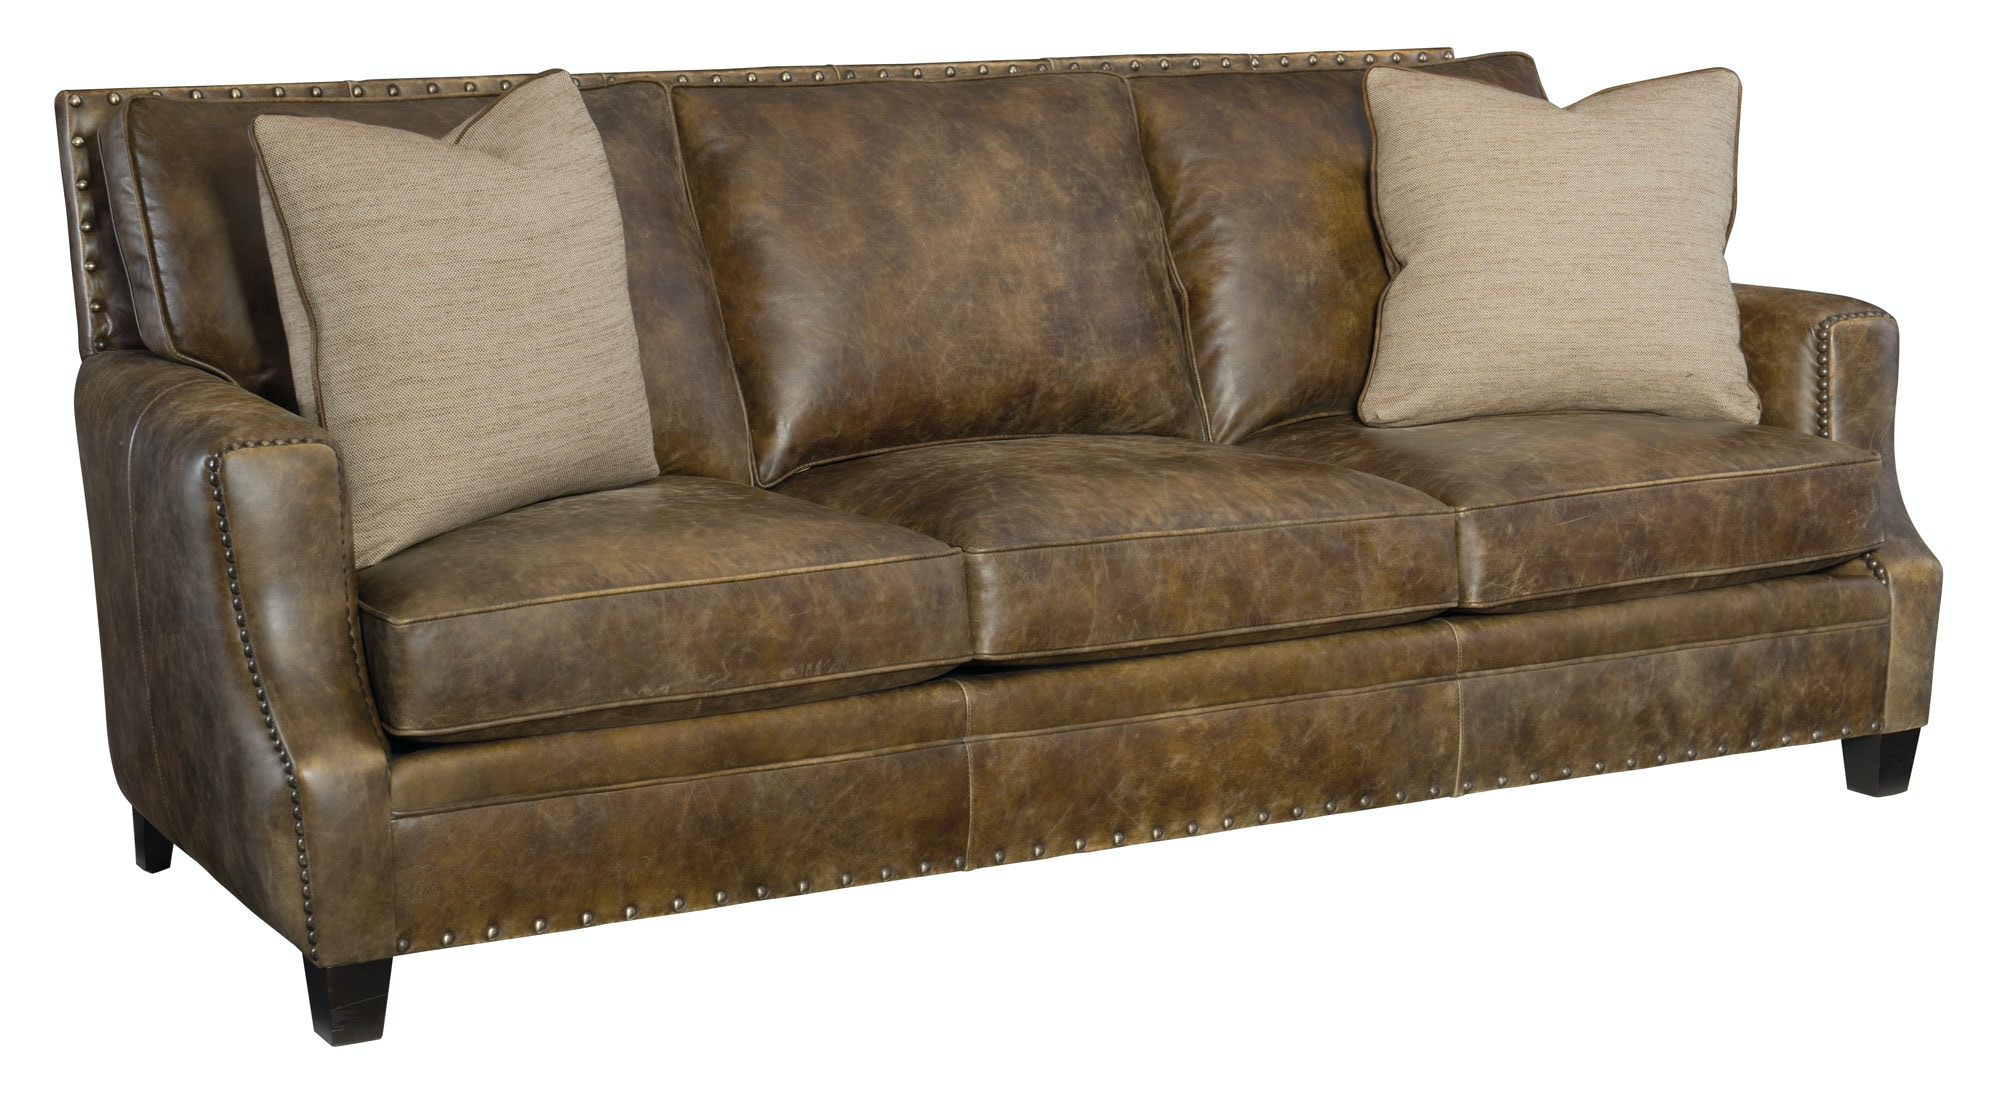 Charming 2687L. Barclay Sofa